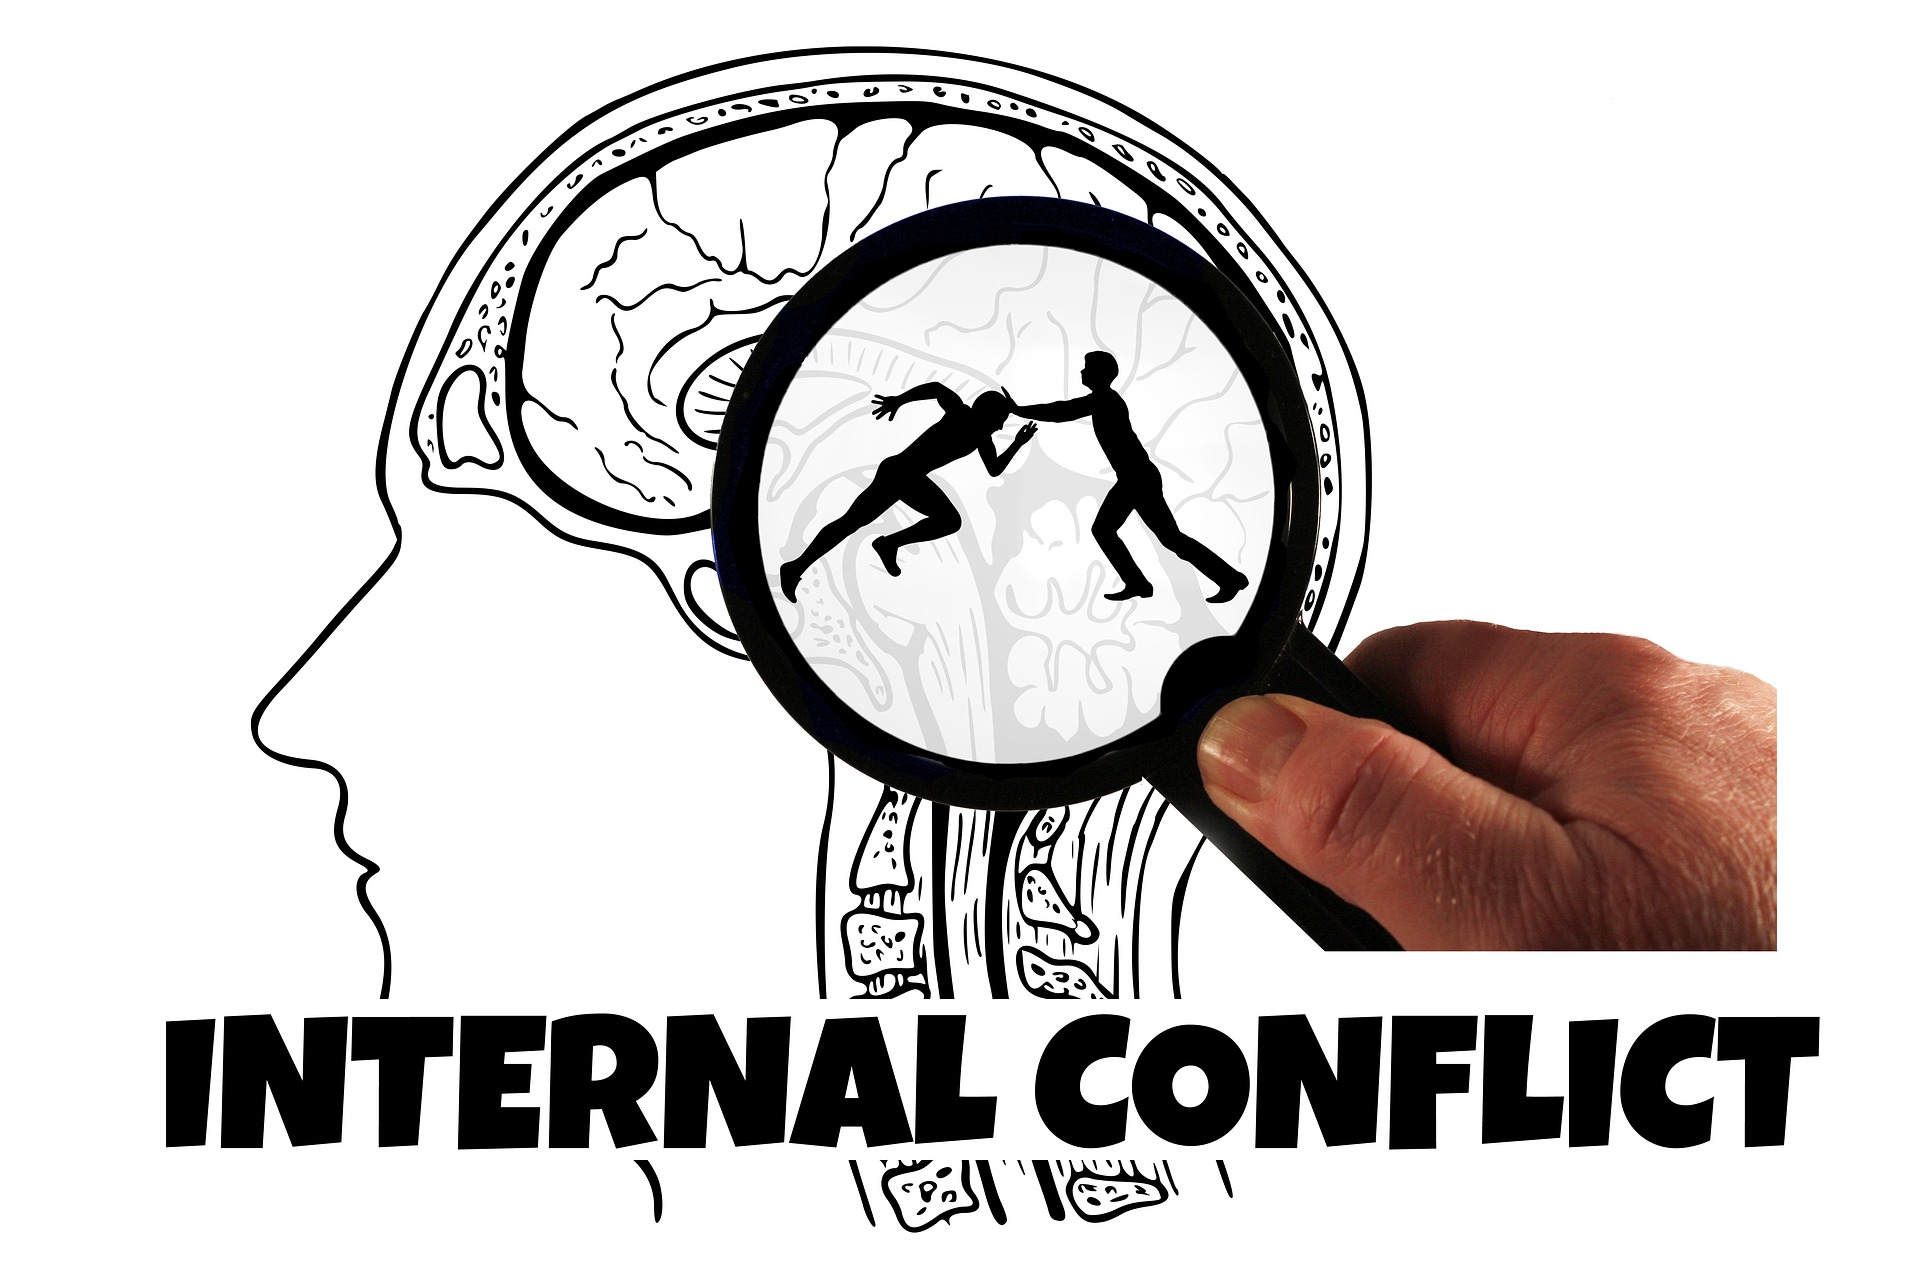 Internal Conflict in the Brain